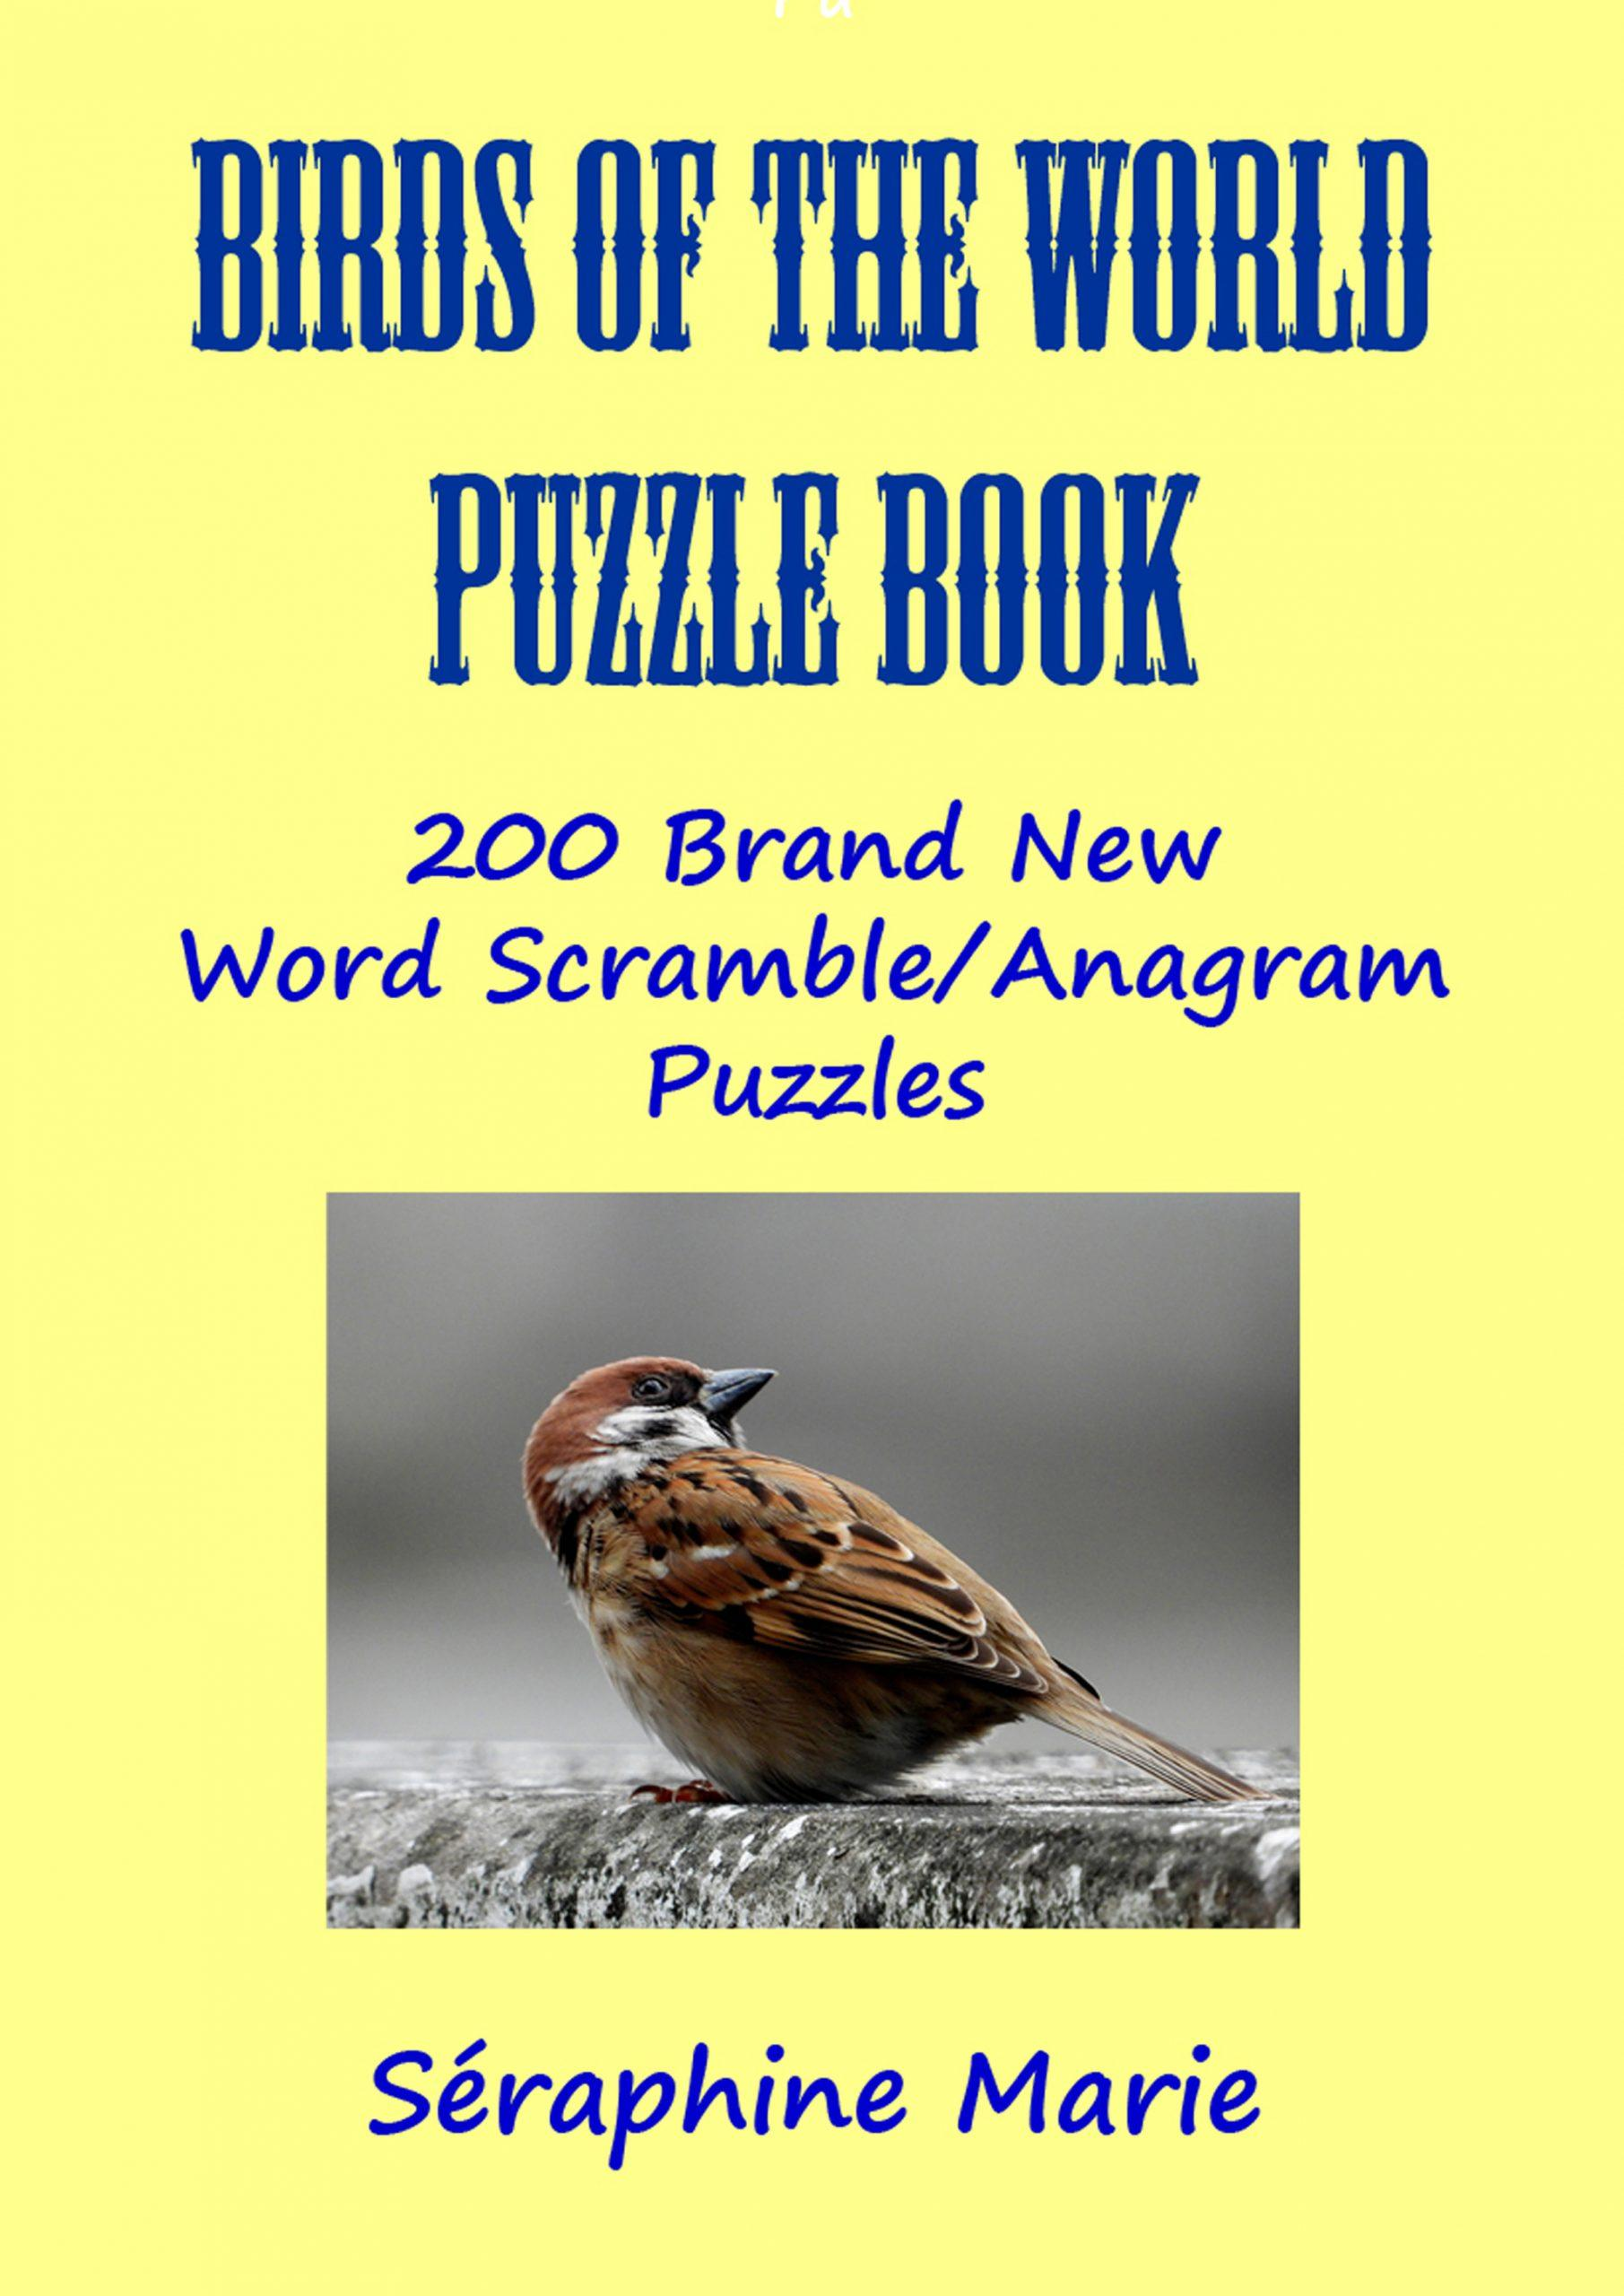 birds of the word word scramble puzzle book